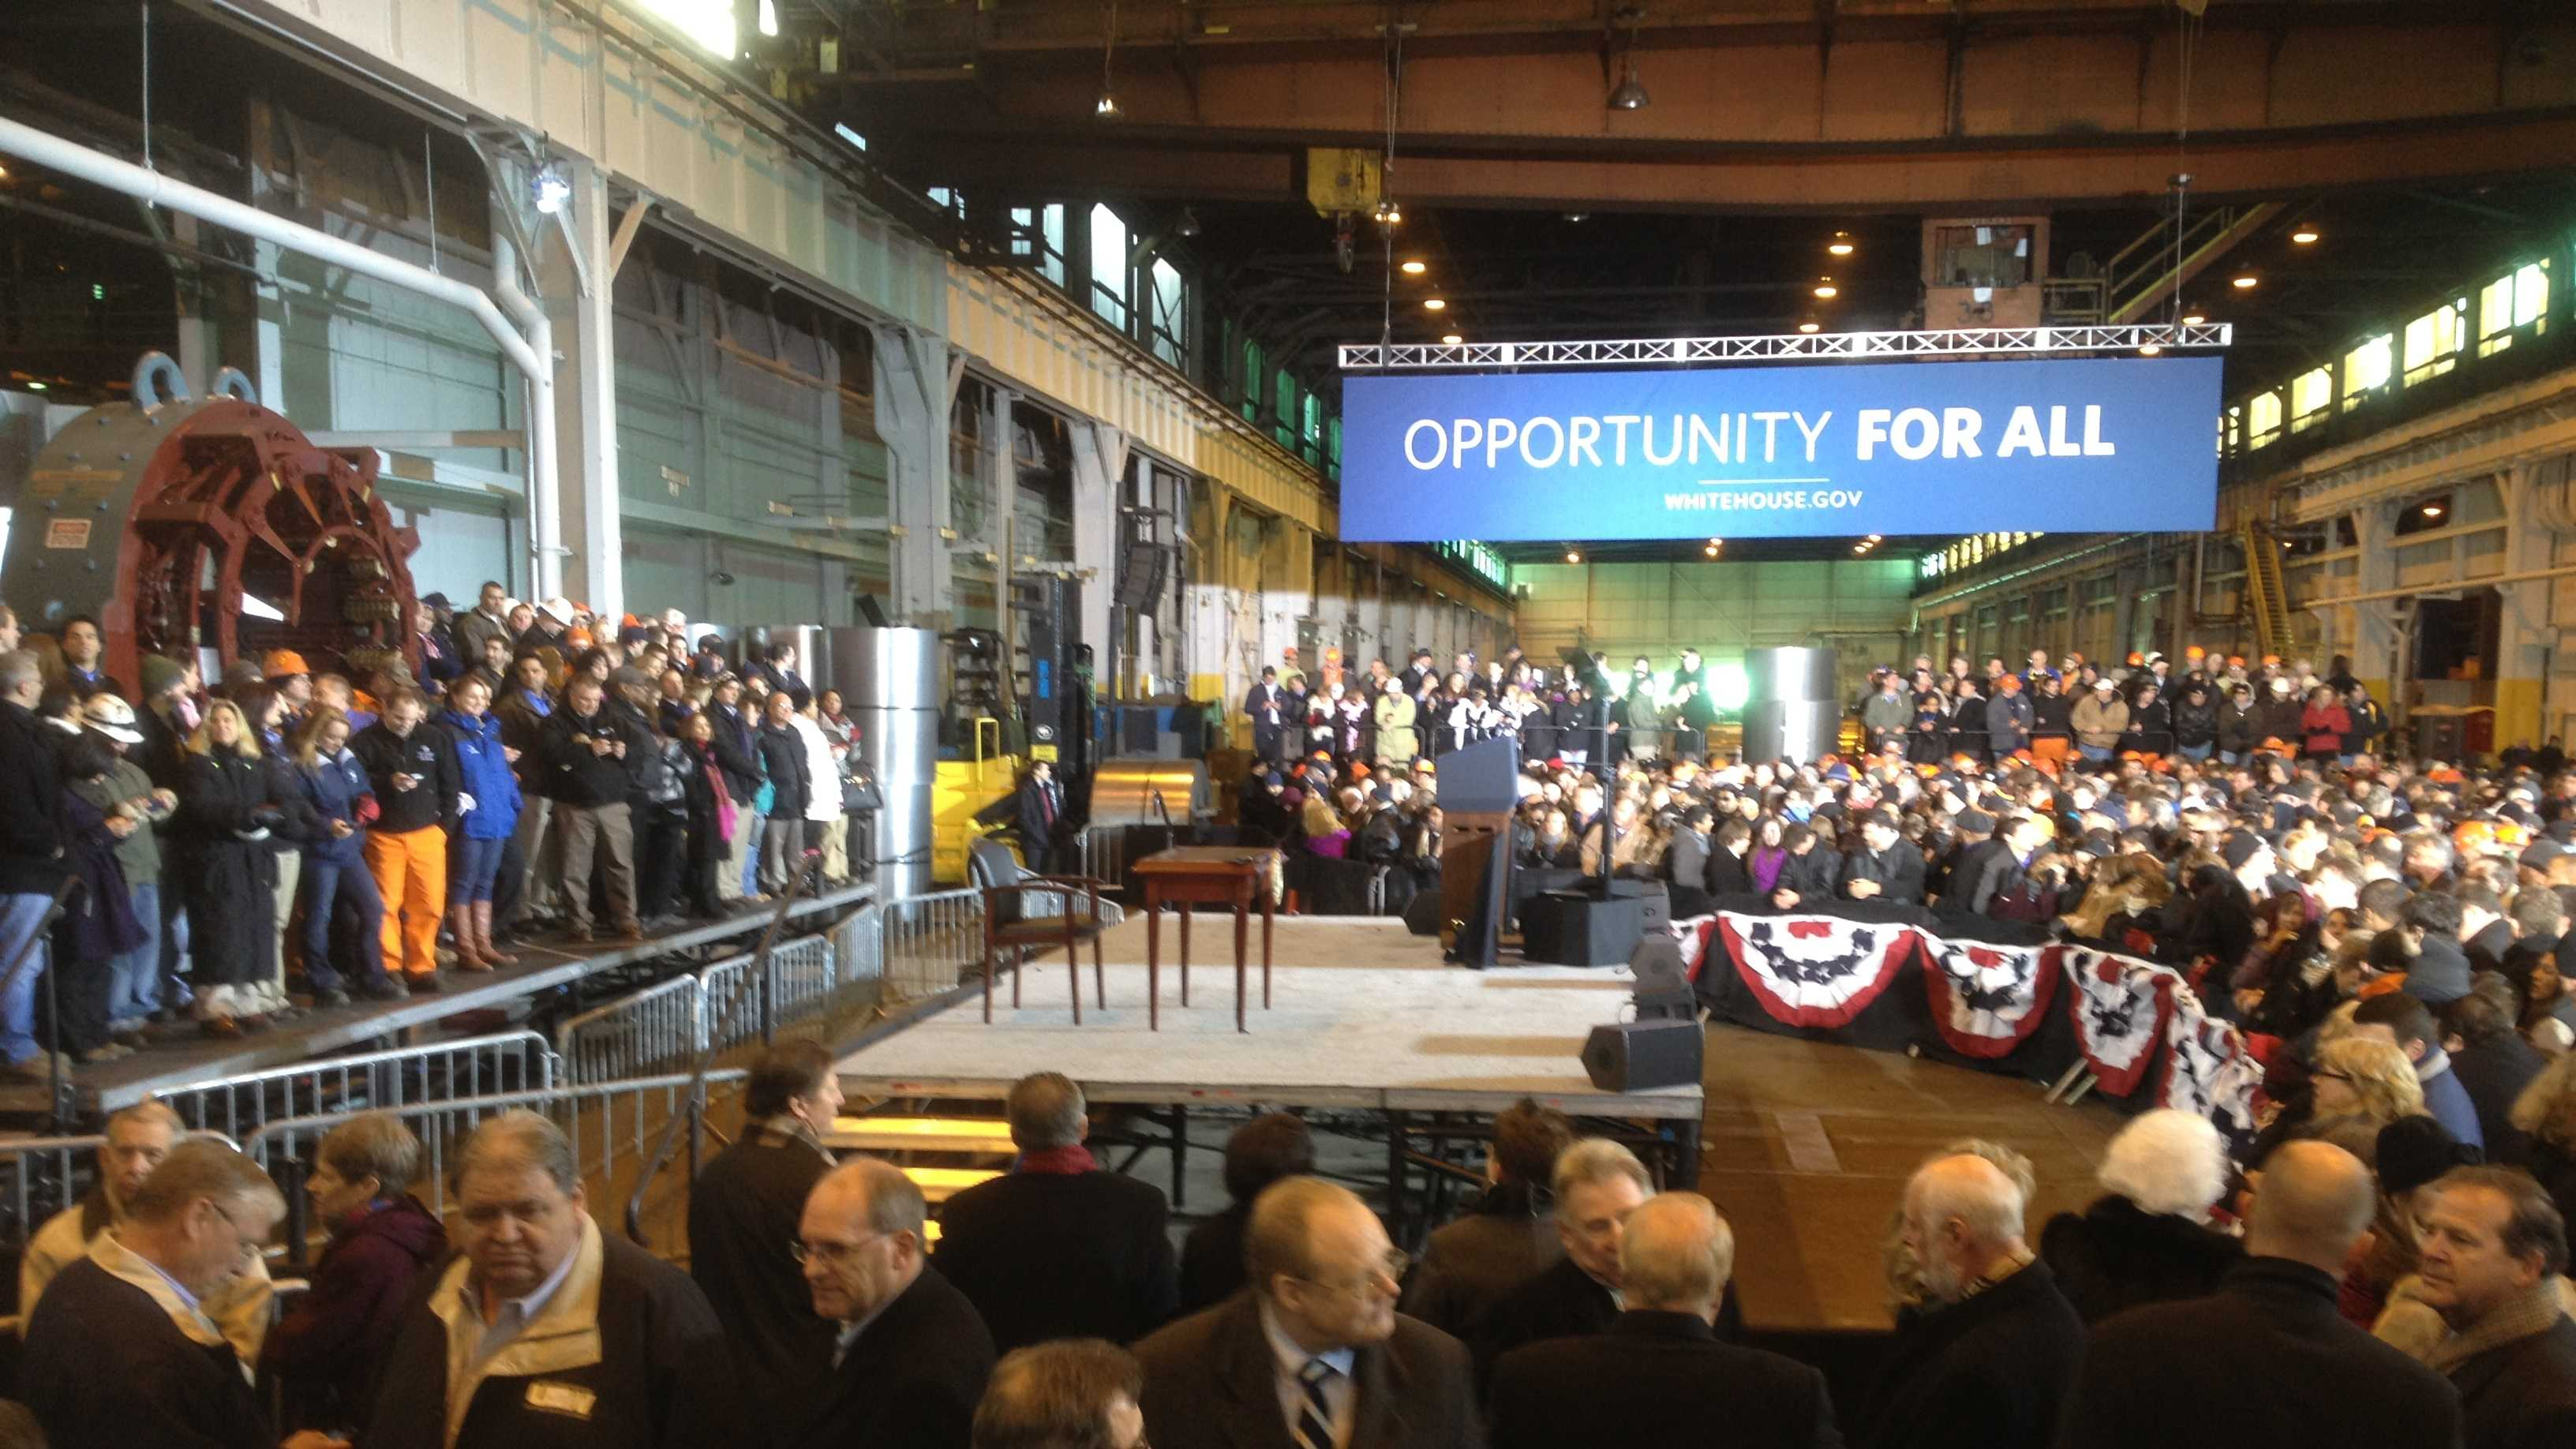 A crowd gathers at the U.S. Steel Irvin Plant to hear President Barack Obama speak.